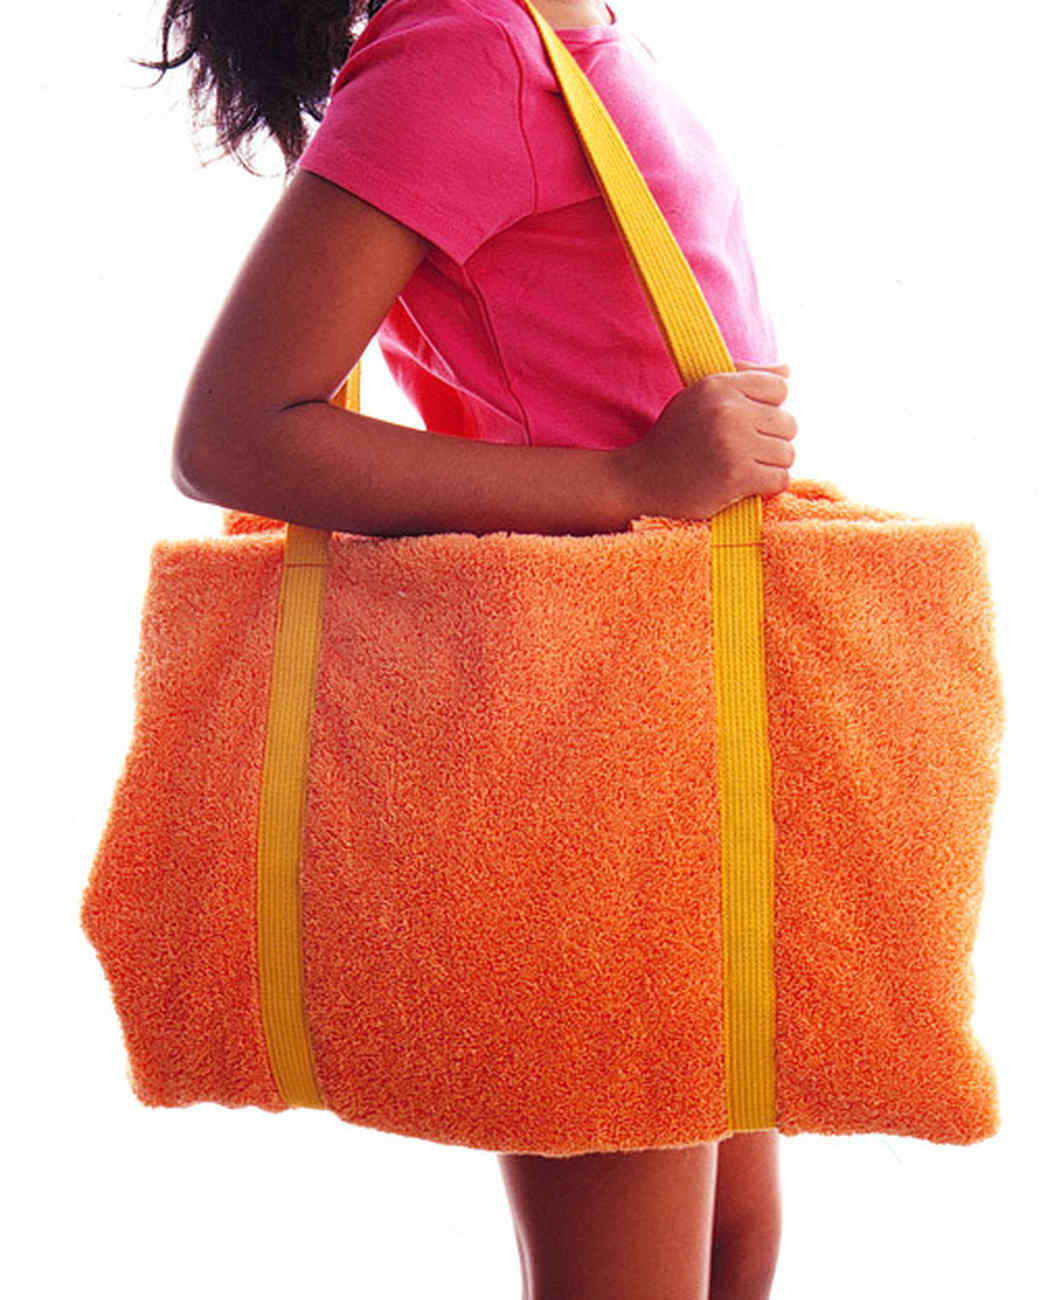 Kid Towel Tote | Martha Stewart